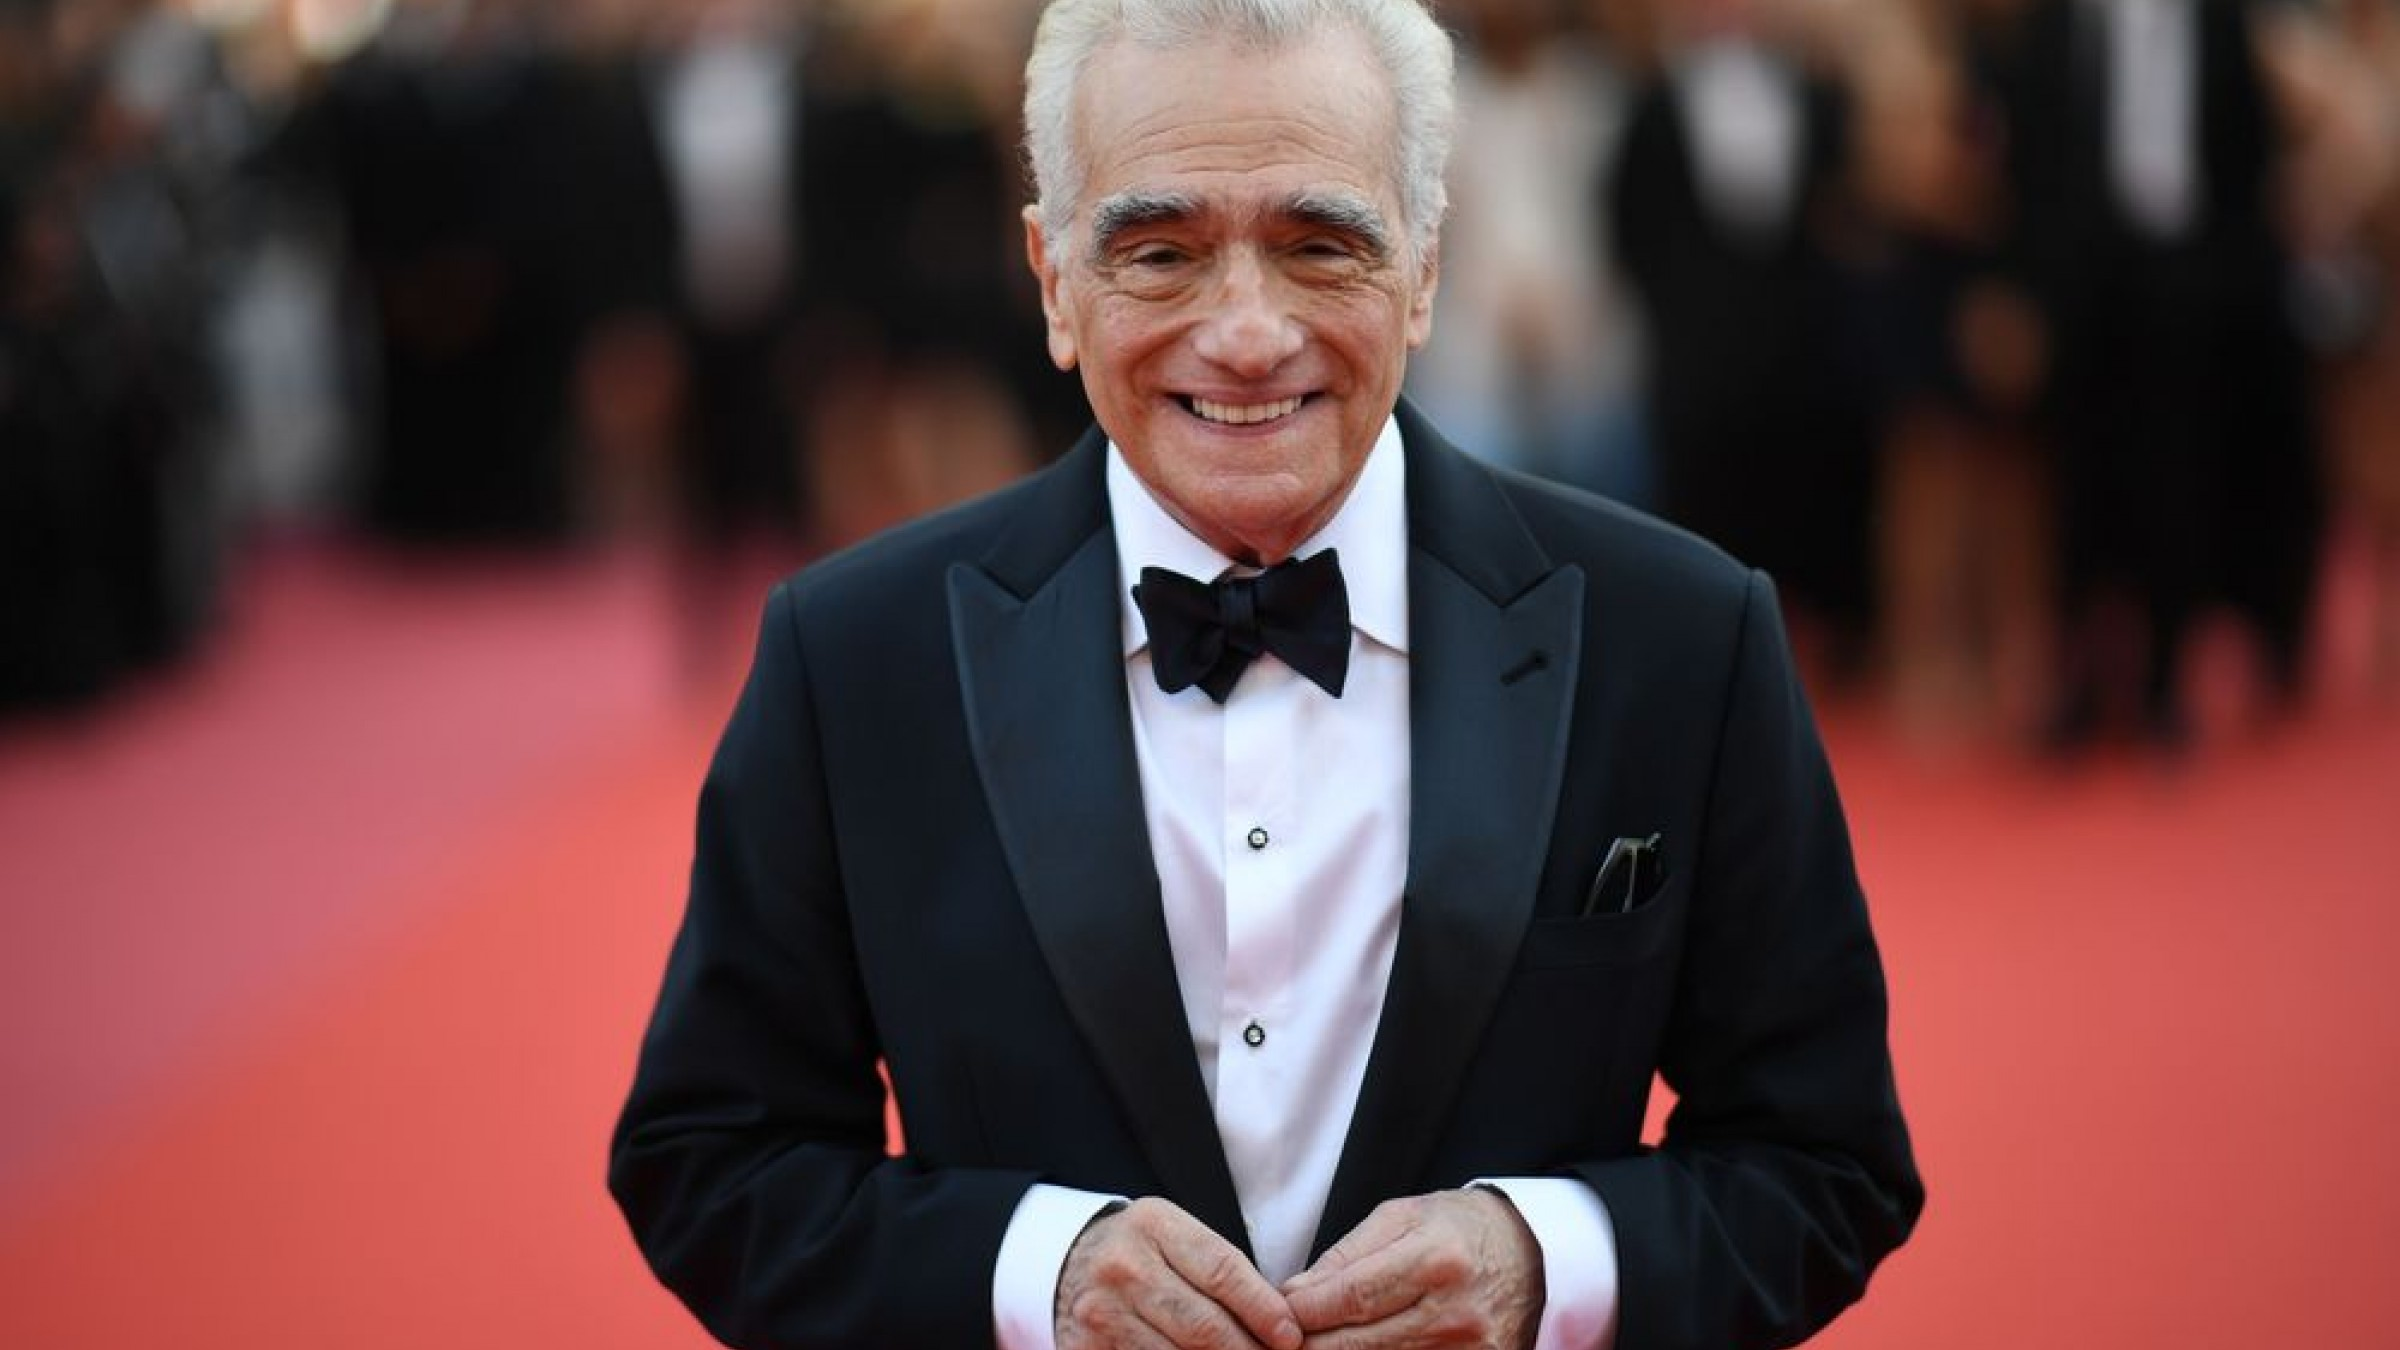 Why Has Martin Scorsese Made It His Mission to Preserve Film?